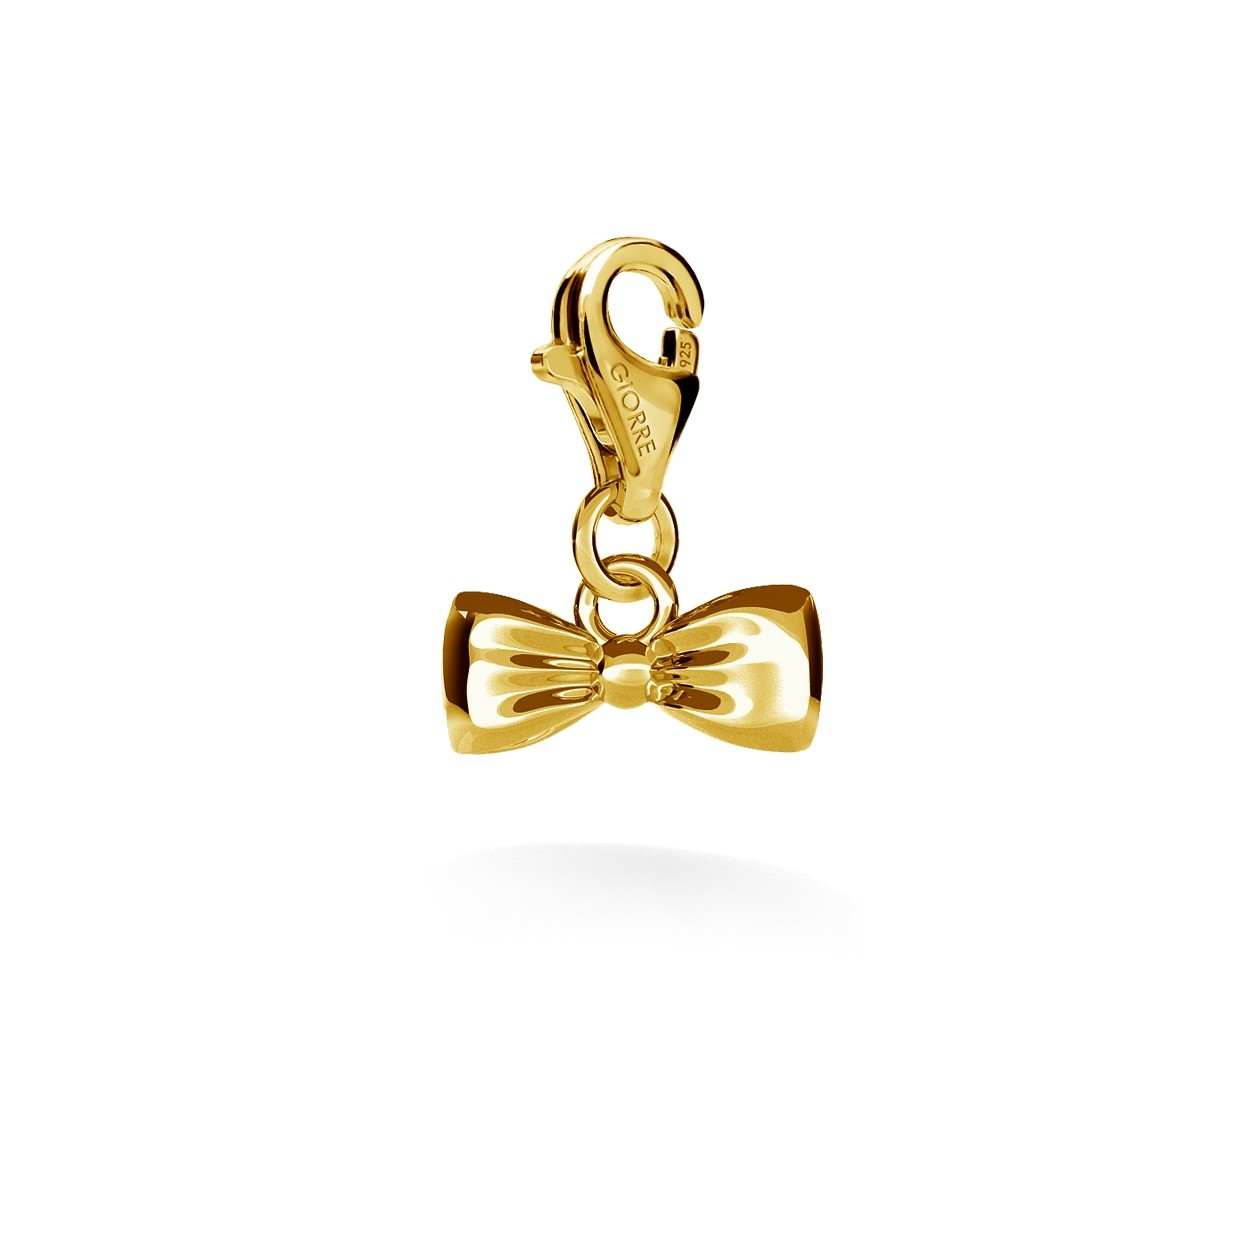 CHARM 32, BOW, SILVER 925,  RHODIUM OR GOLD PLATED